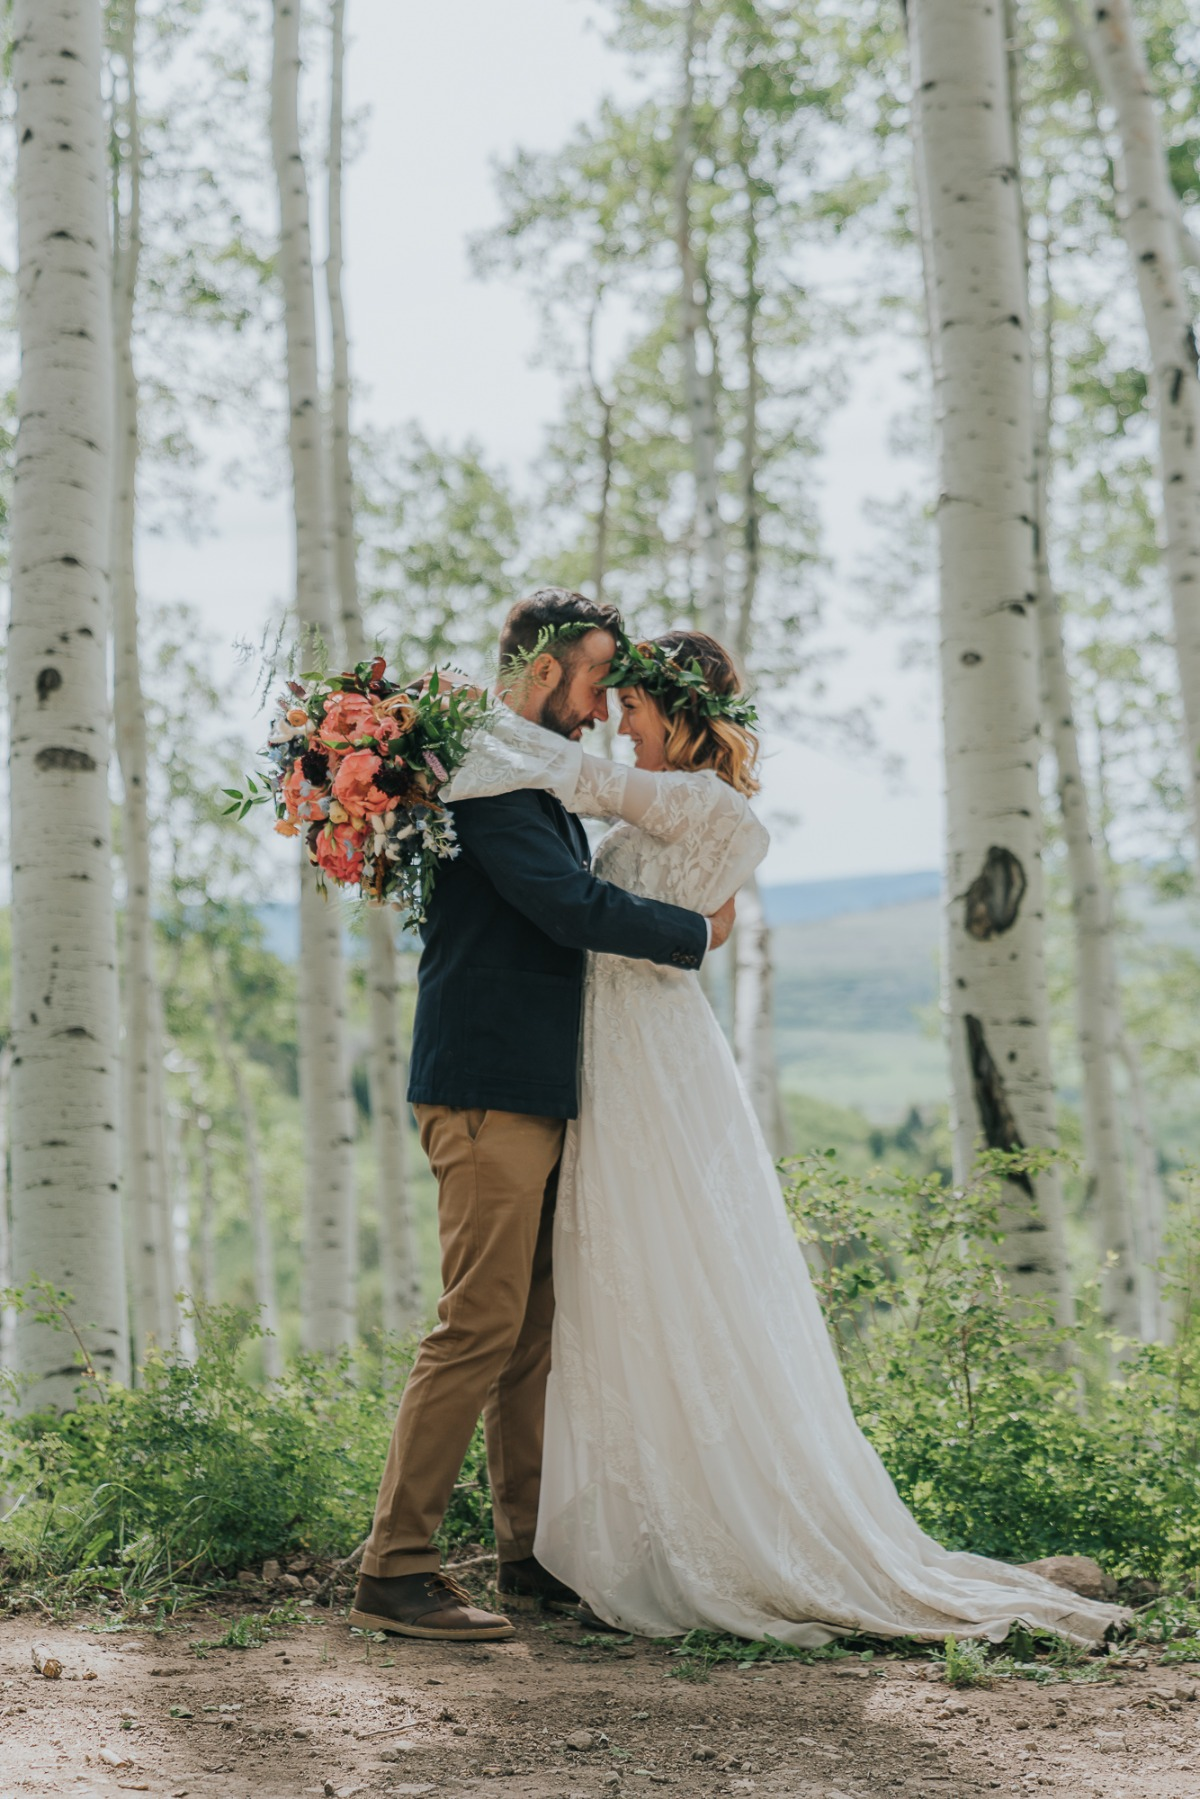 woodsy wedding photography ideas